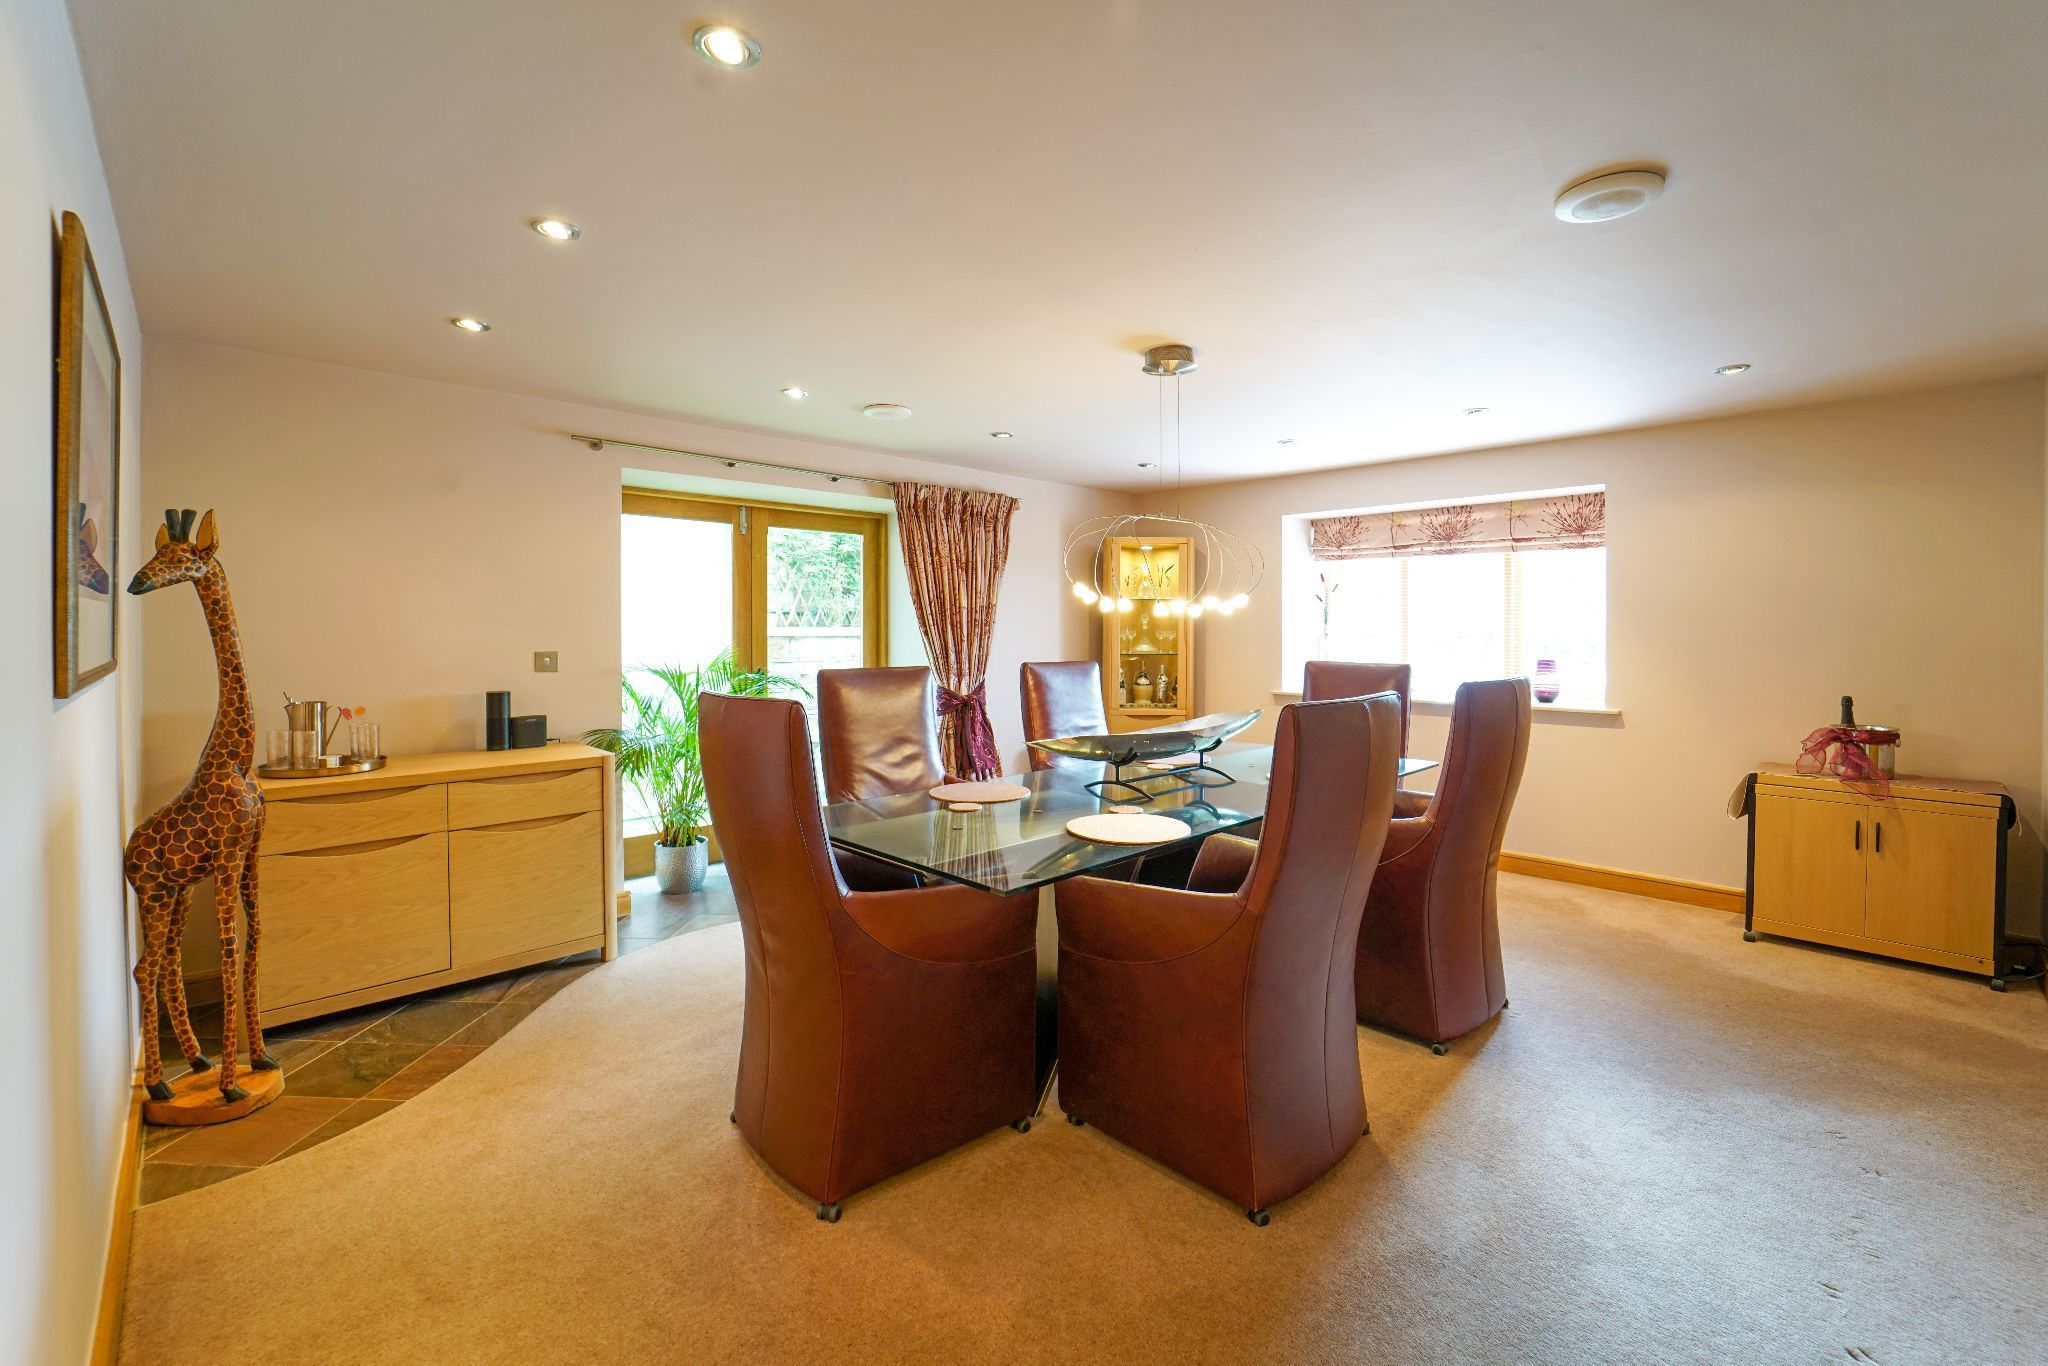 5 bedroom barn conversion house For Sale in Bolton - Photograph 14